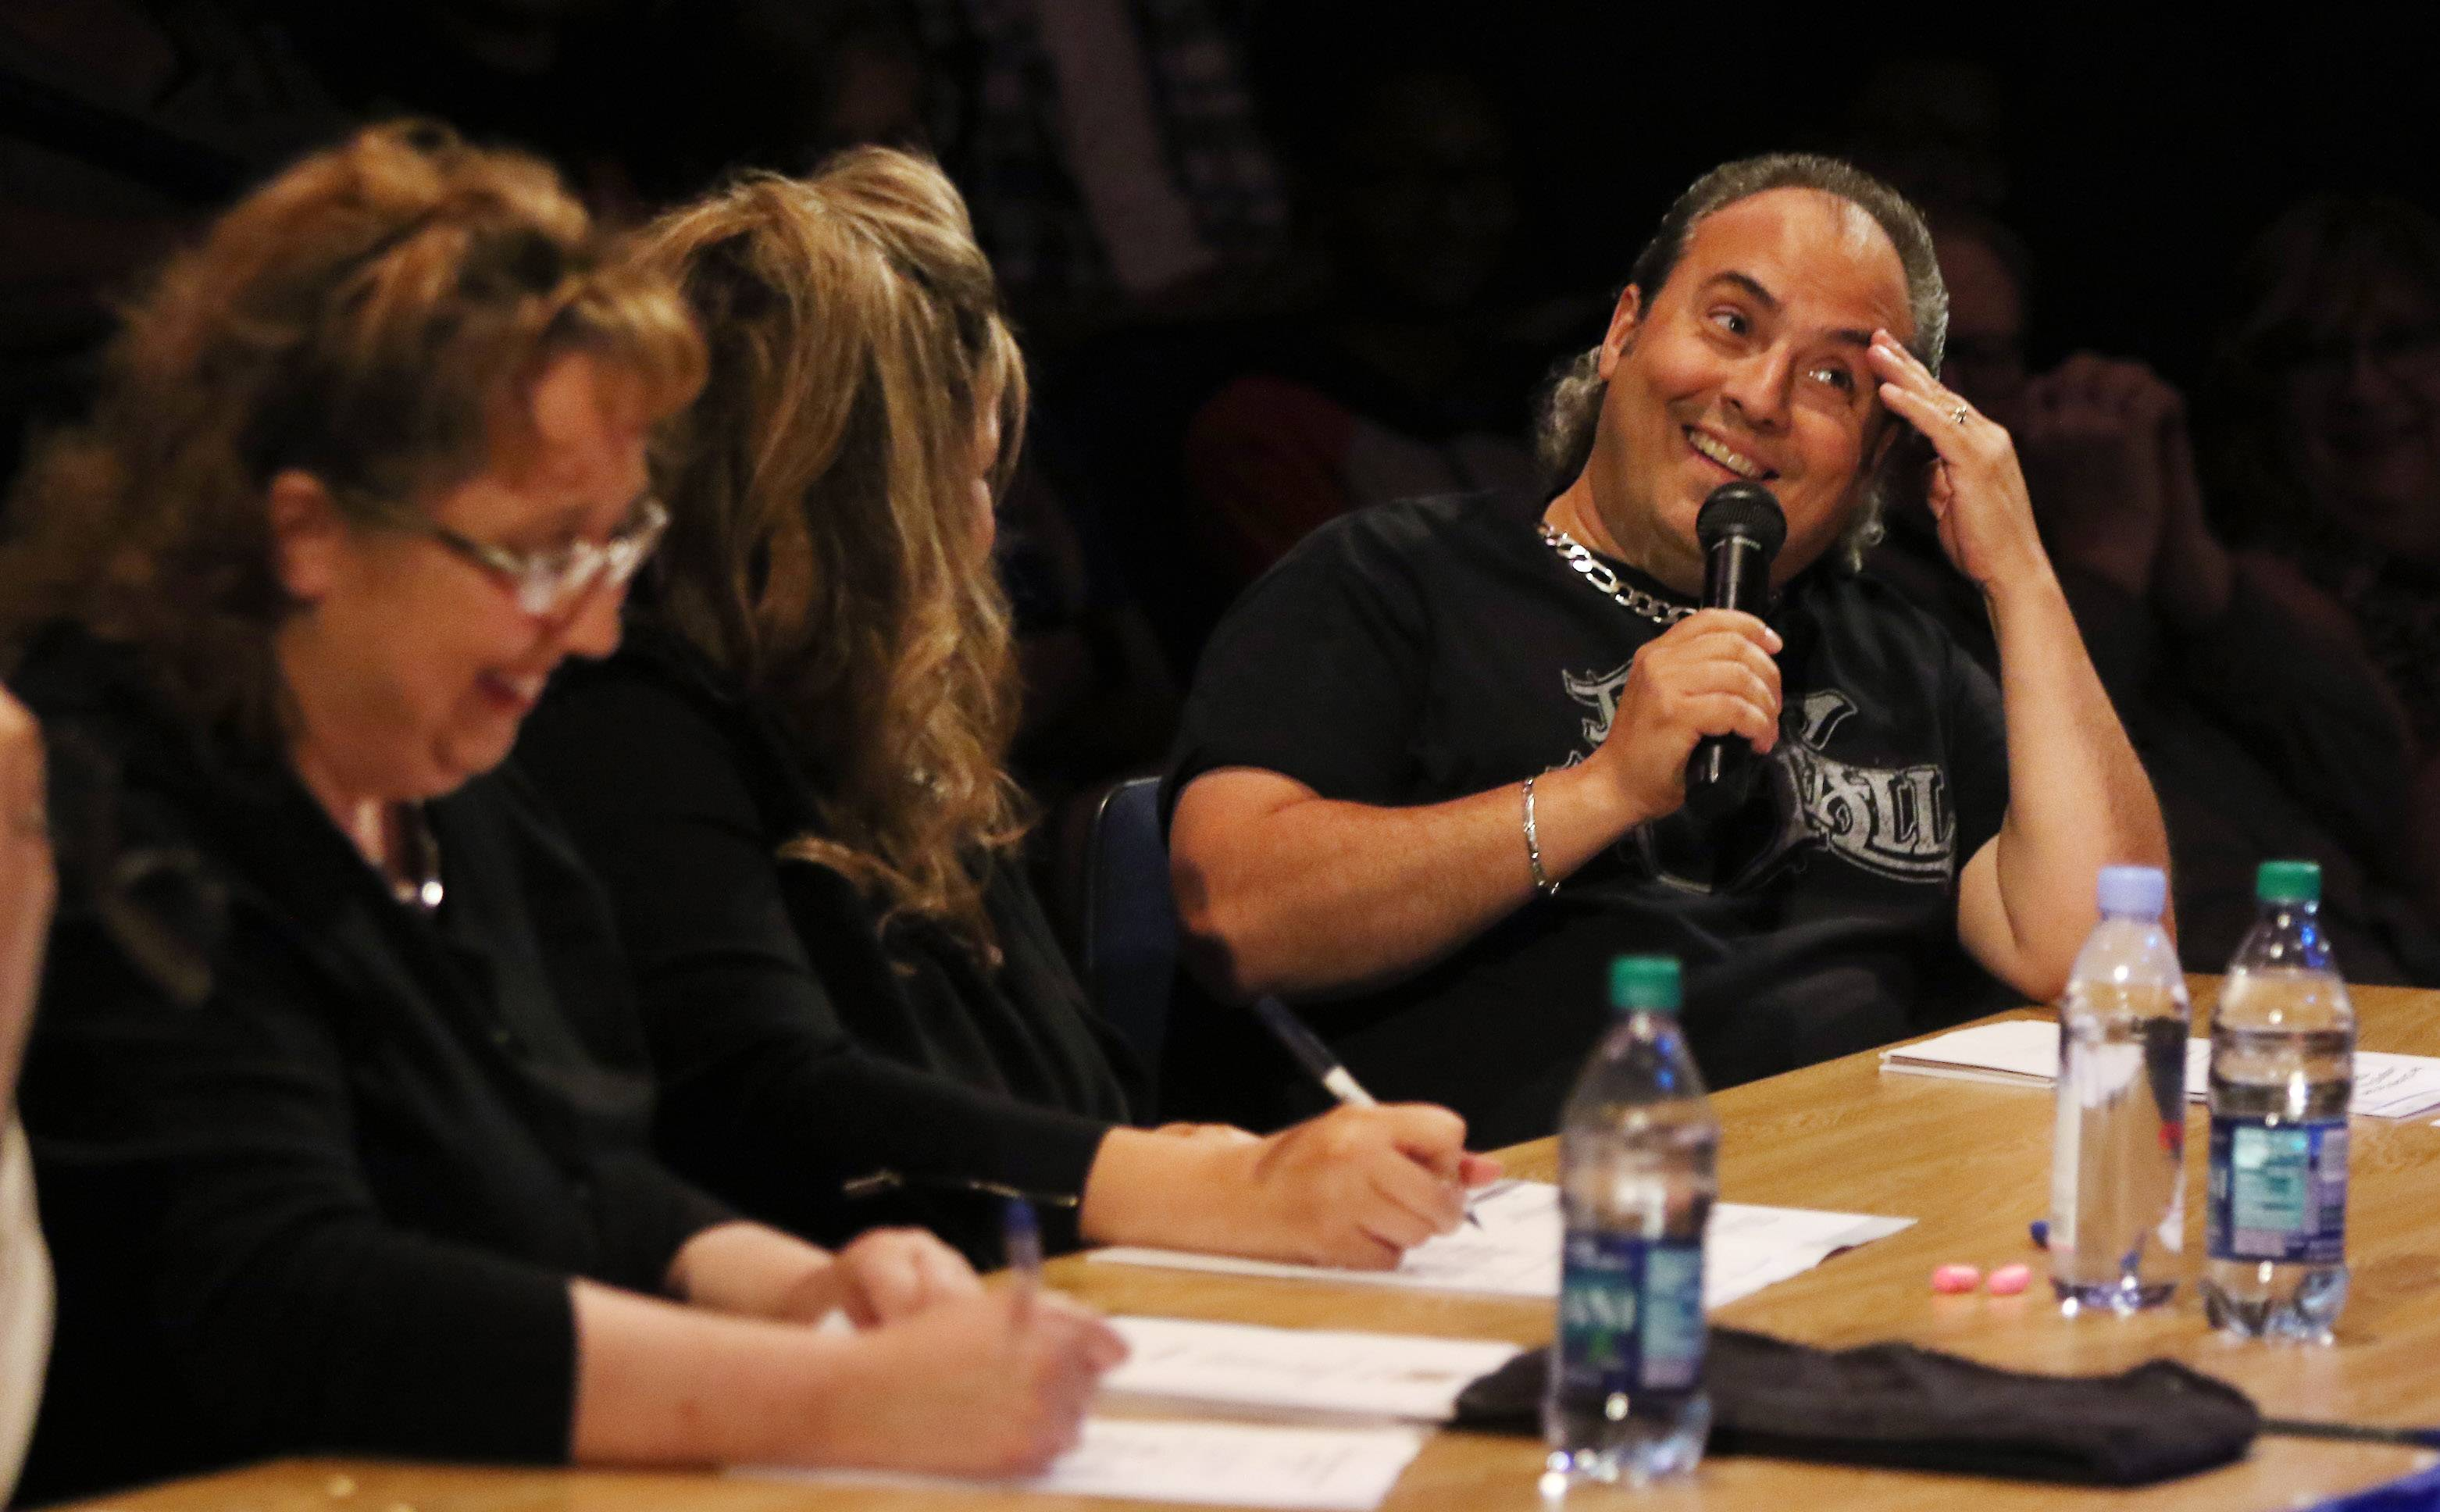 Judge Ron Onesti makes an observation as he talks about an act during the Suburban Chicago's Got Talent competition at the Prairie Center for the Arts in Schaumburg on Sunday night. The top 15 finalists performed as they competed for the grand prize to be announced of Aug. 5.